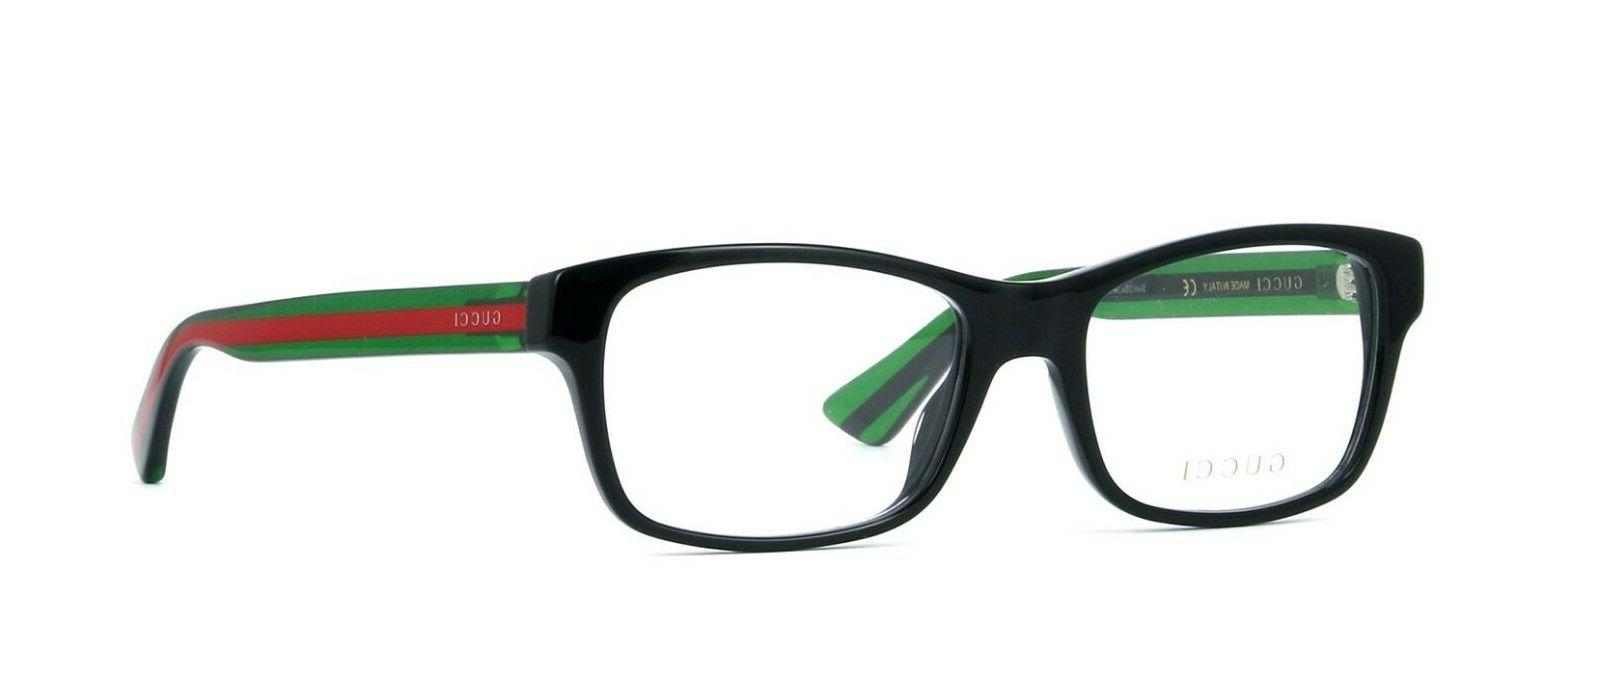 authentic 0006o 002 black green